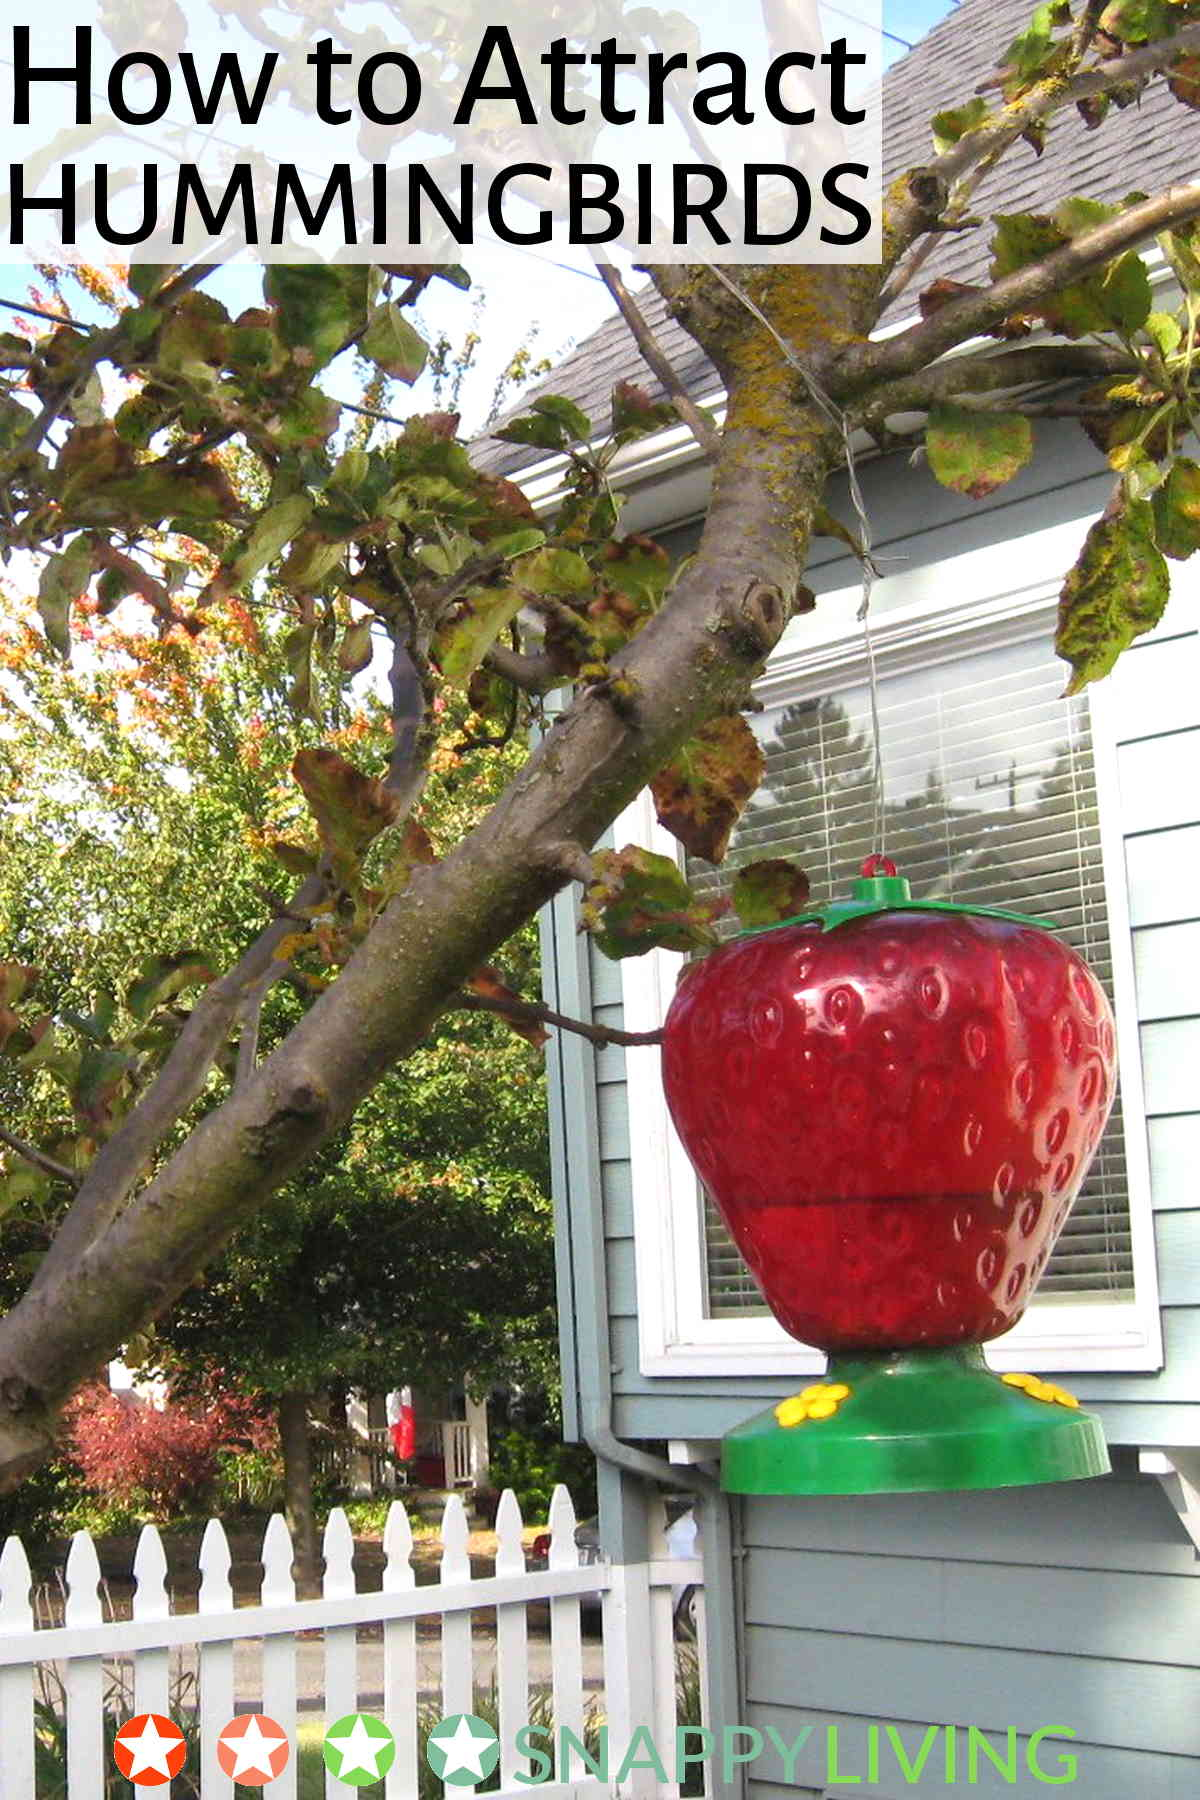 Hummingbird feeder in the shape of a huge strawberry